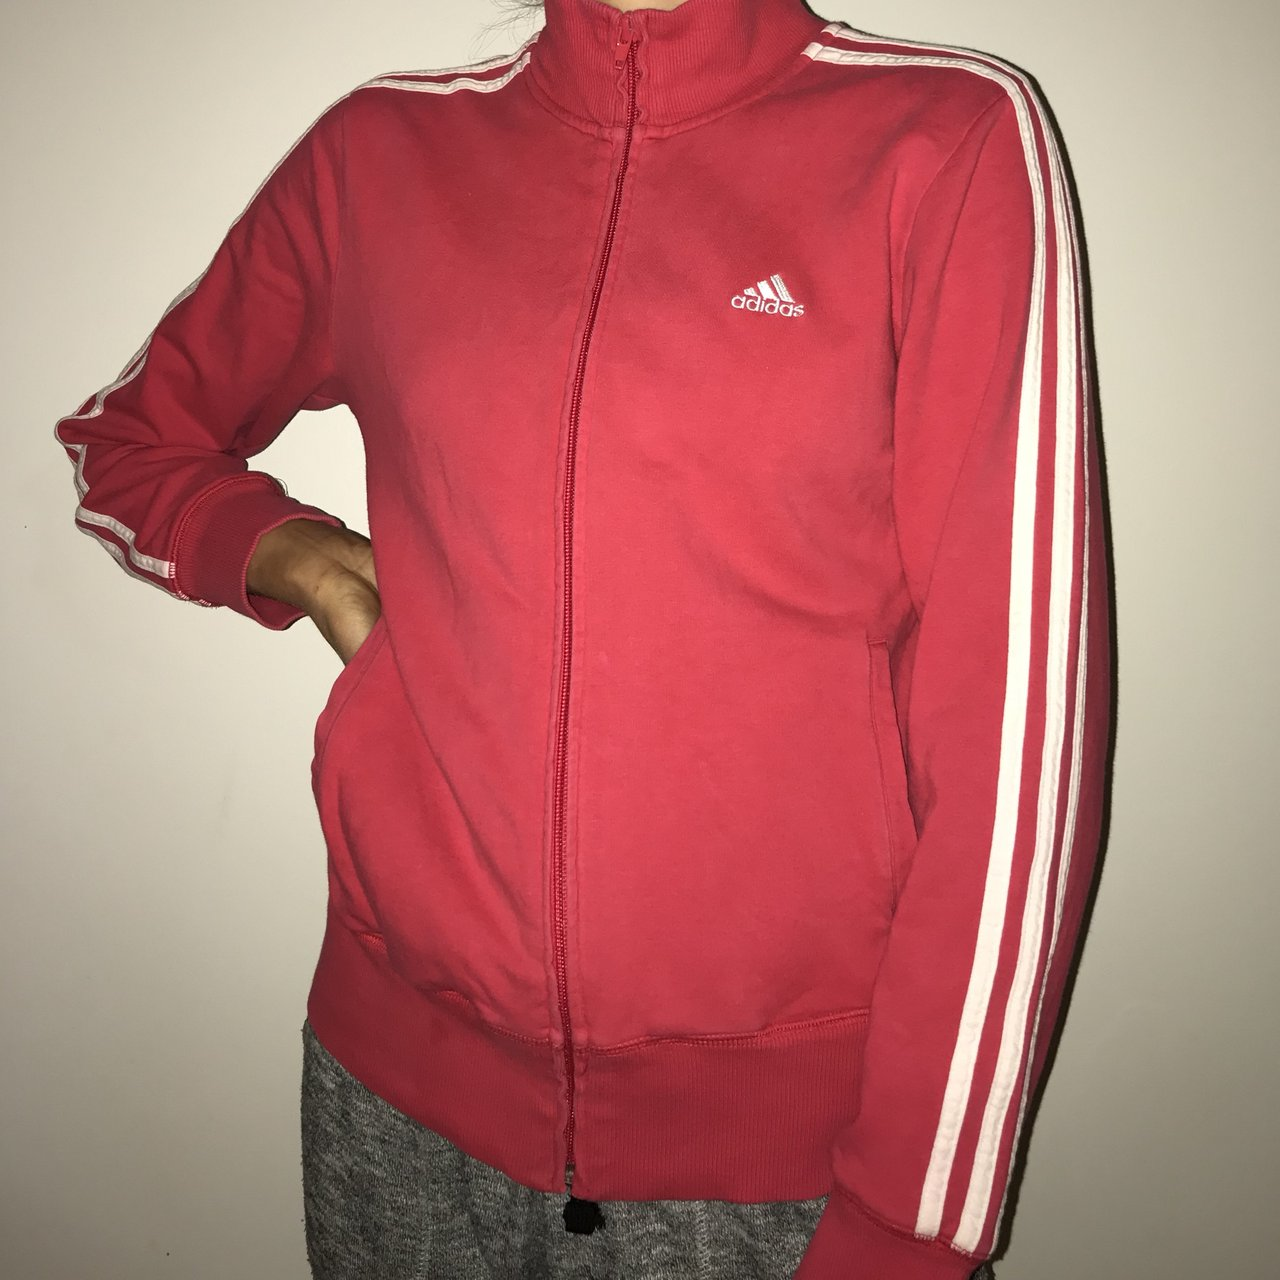 072b283f1fbf Pinky red adidas jumper jacket!! Size 10 Amazing and on - Depop